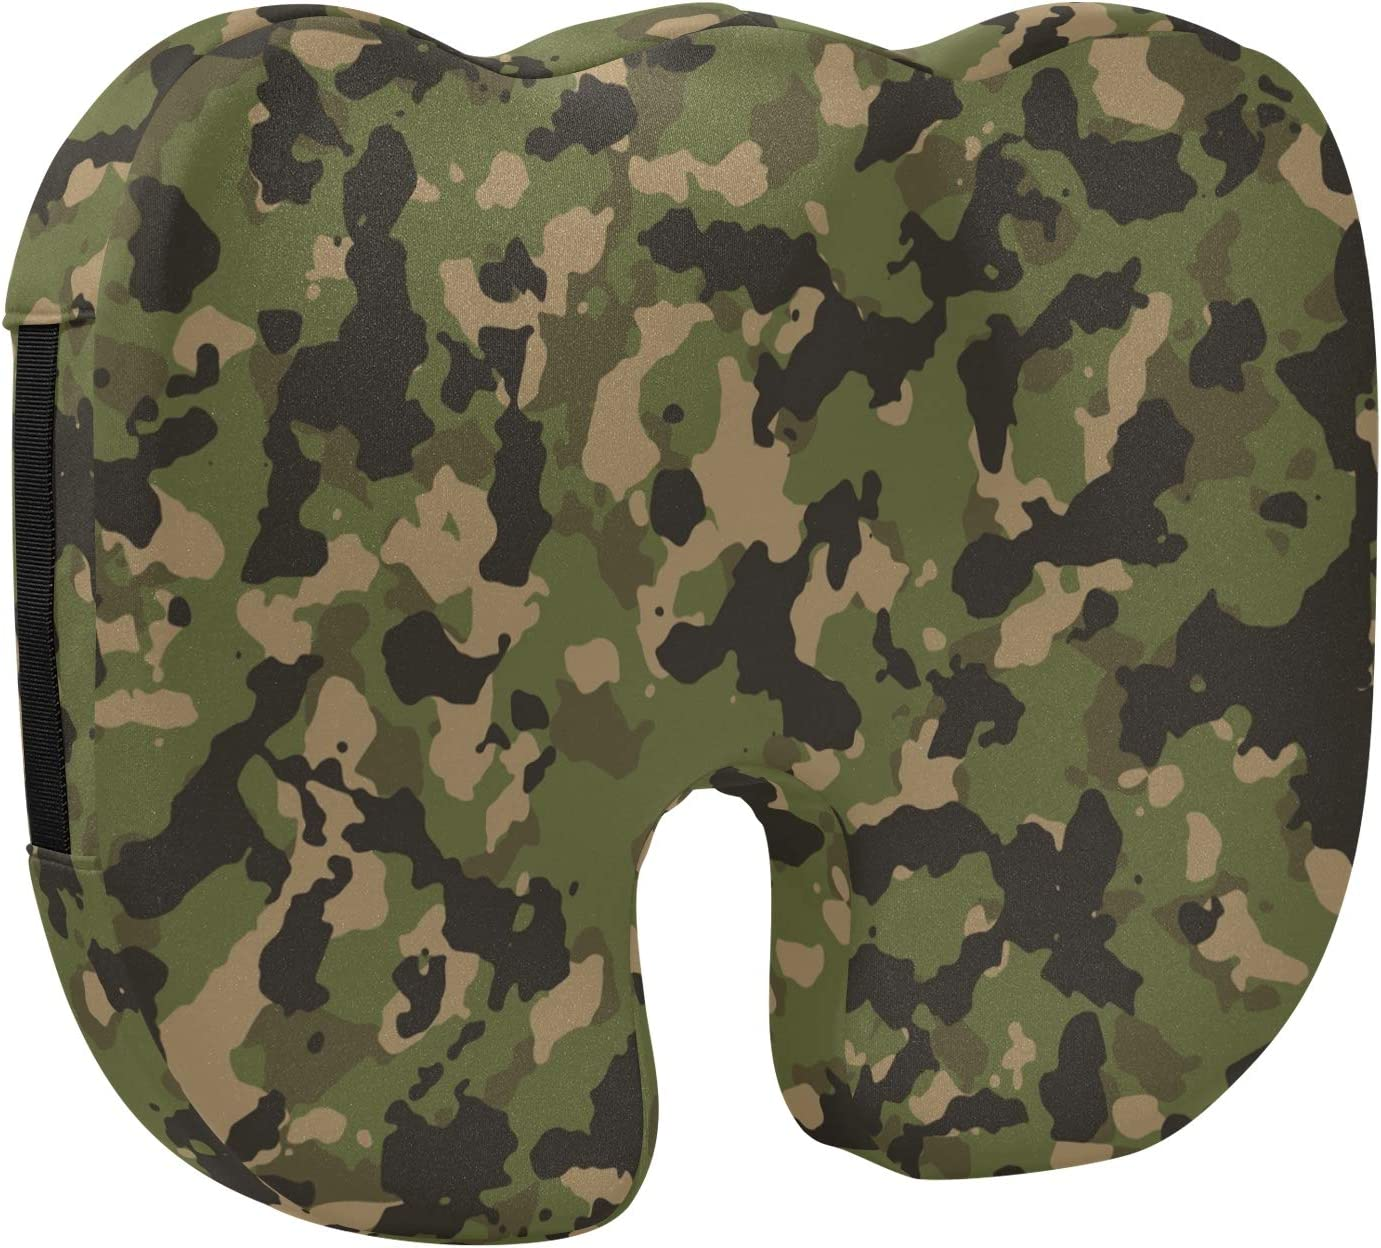 xigua Camouflage Memory Max 80% OFF Foam Seat New York Mall Comfort Cushion Breathab Cover